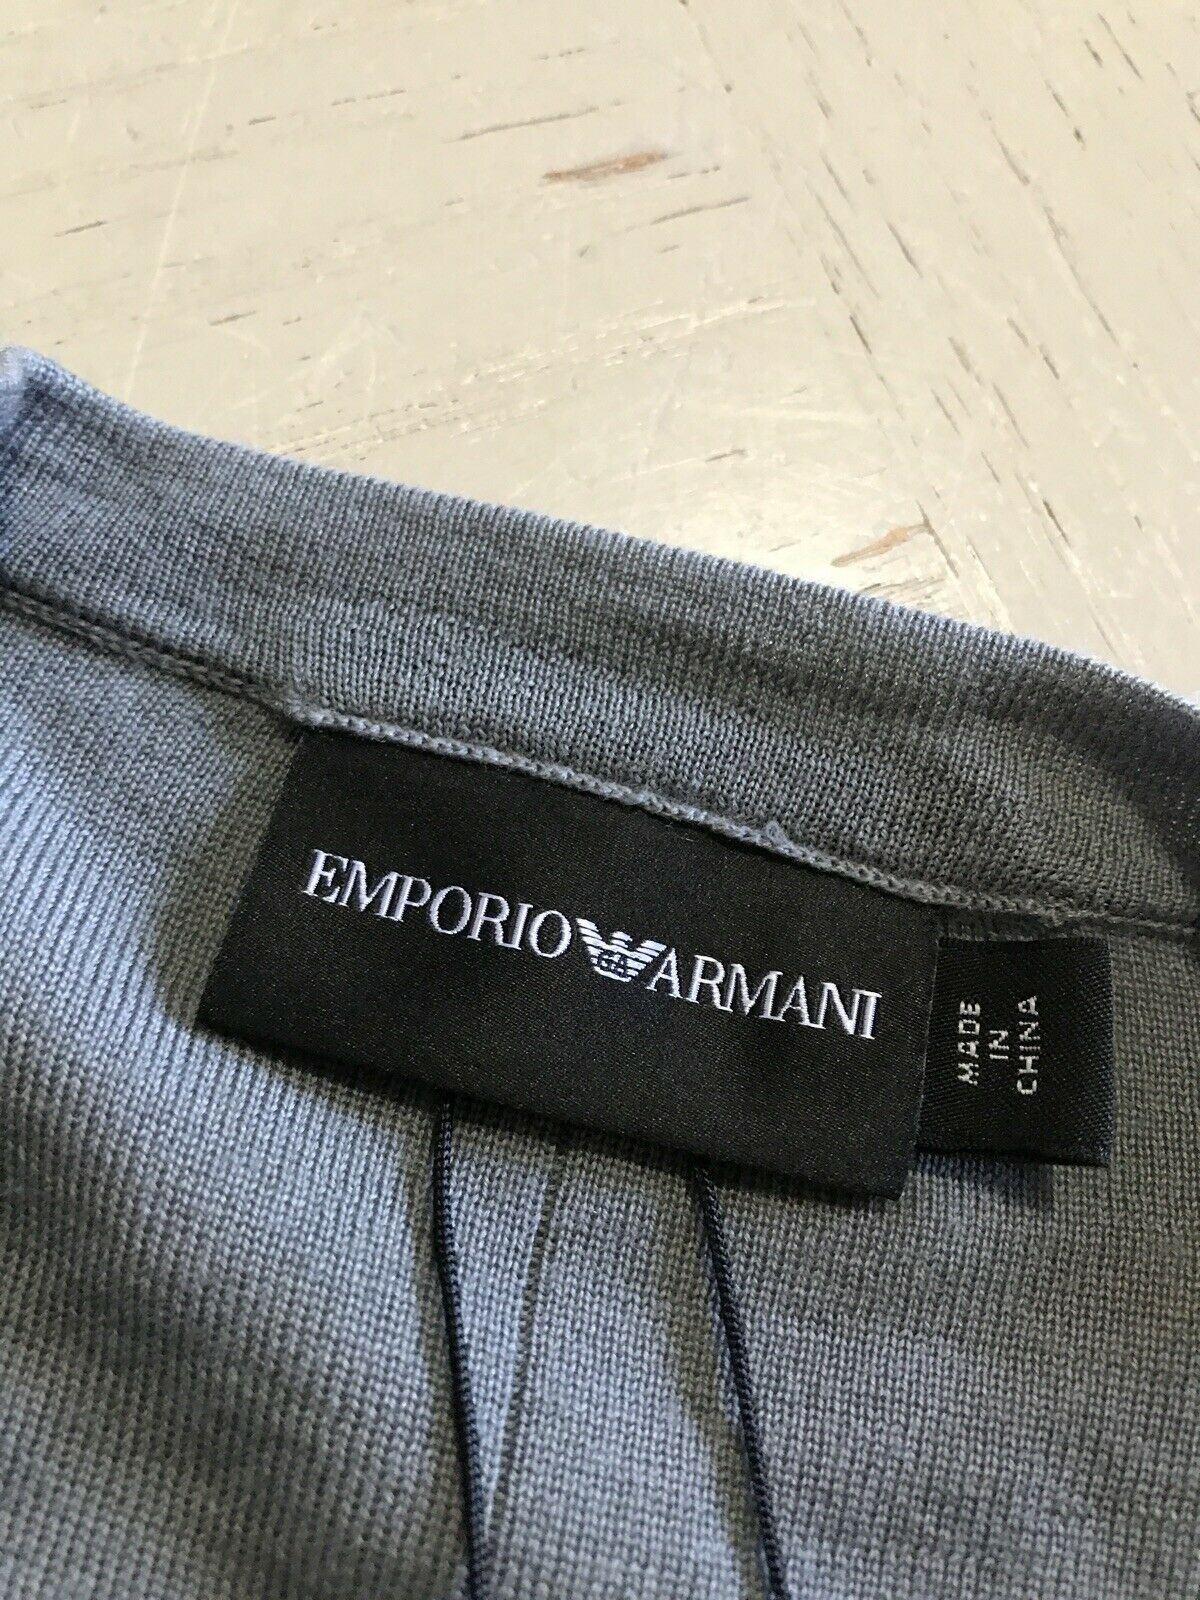 NWT $395 Emporio Armani Men's Crewneck Dark Gray Sweater 2XL